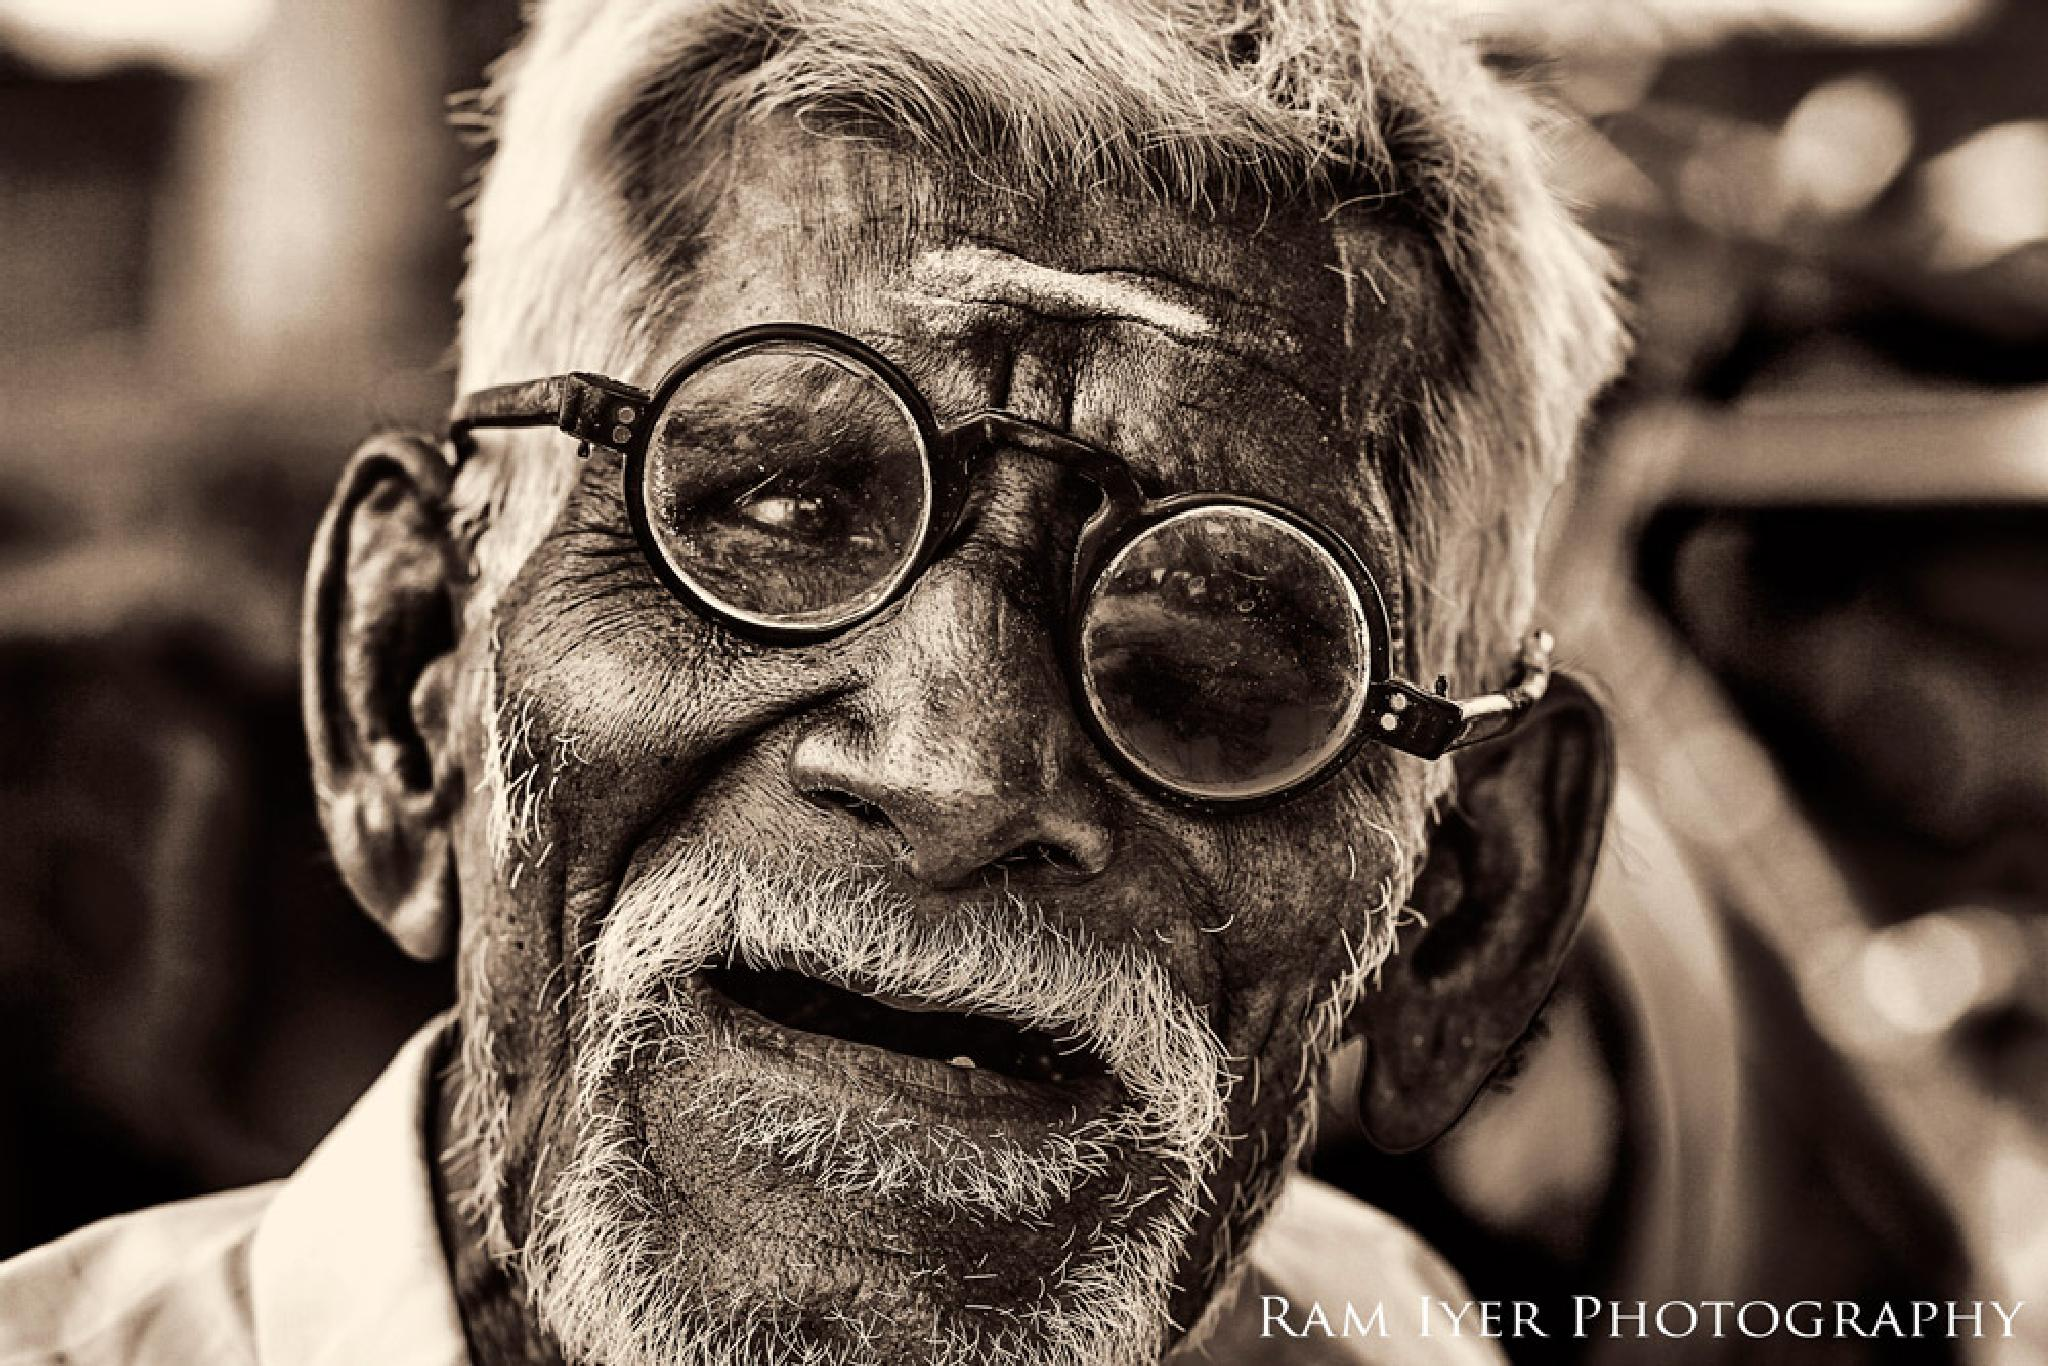 Forgotten Memories....IS AGE A FACTOR? by Ram Iyer